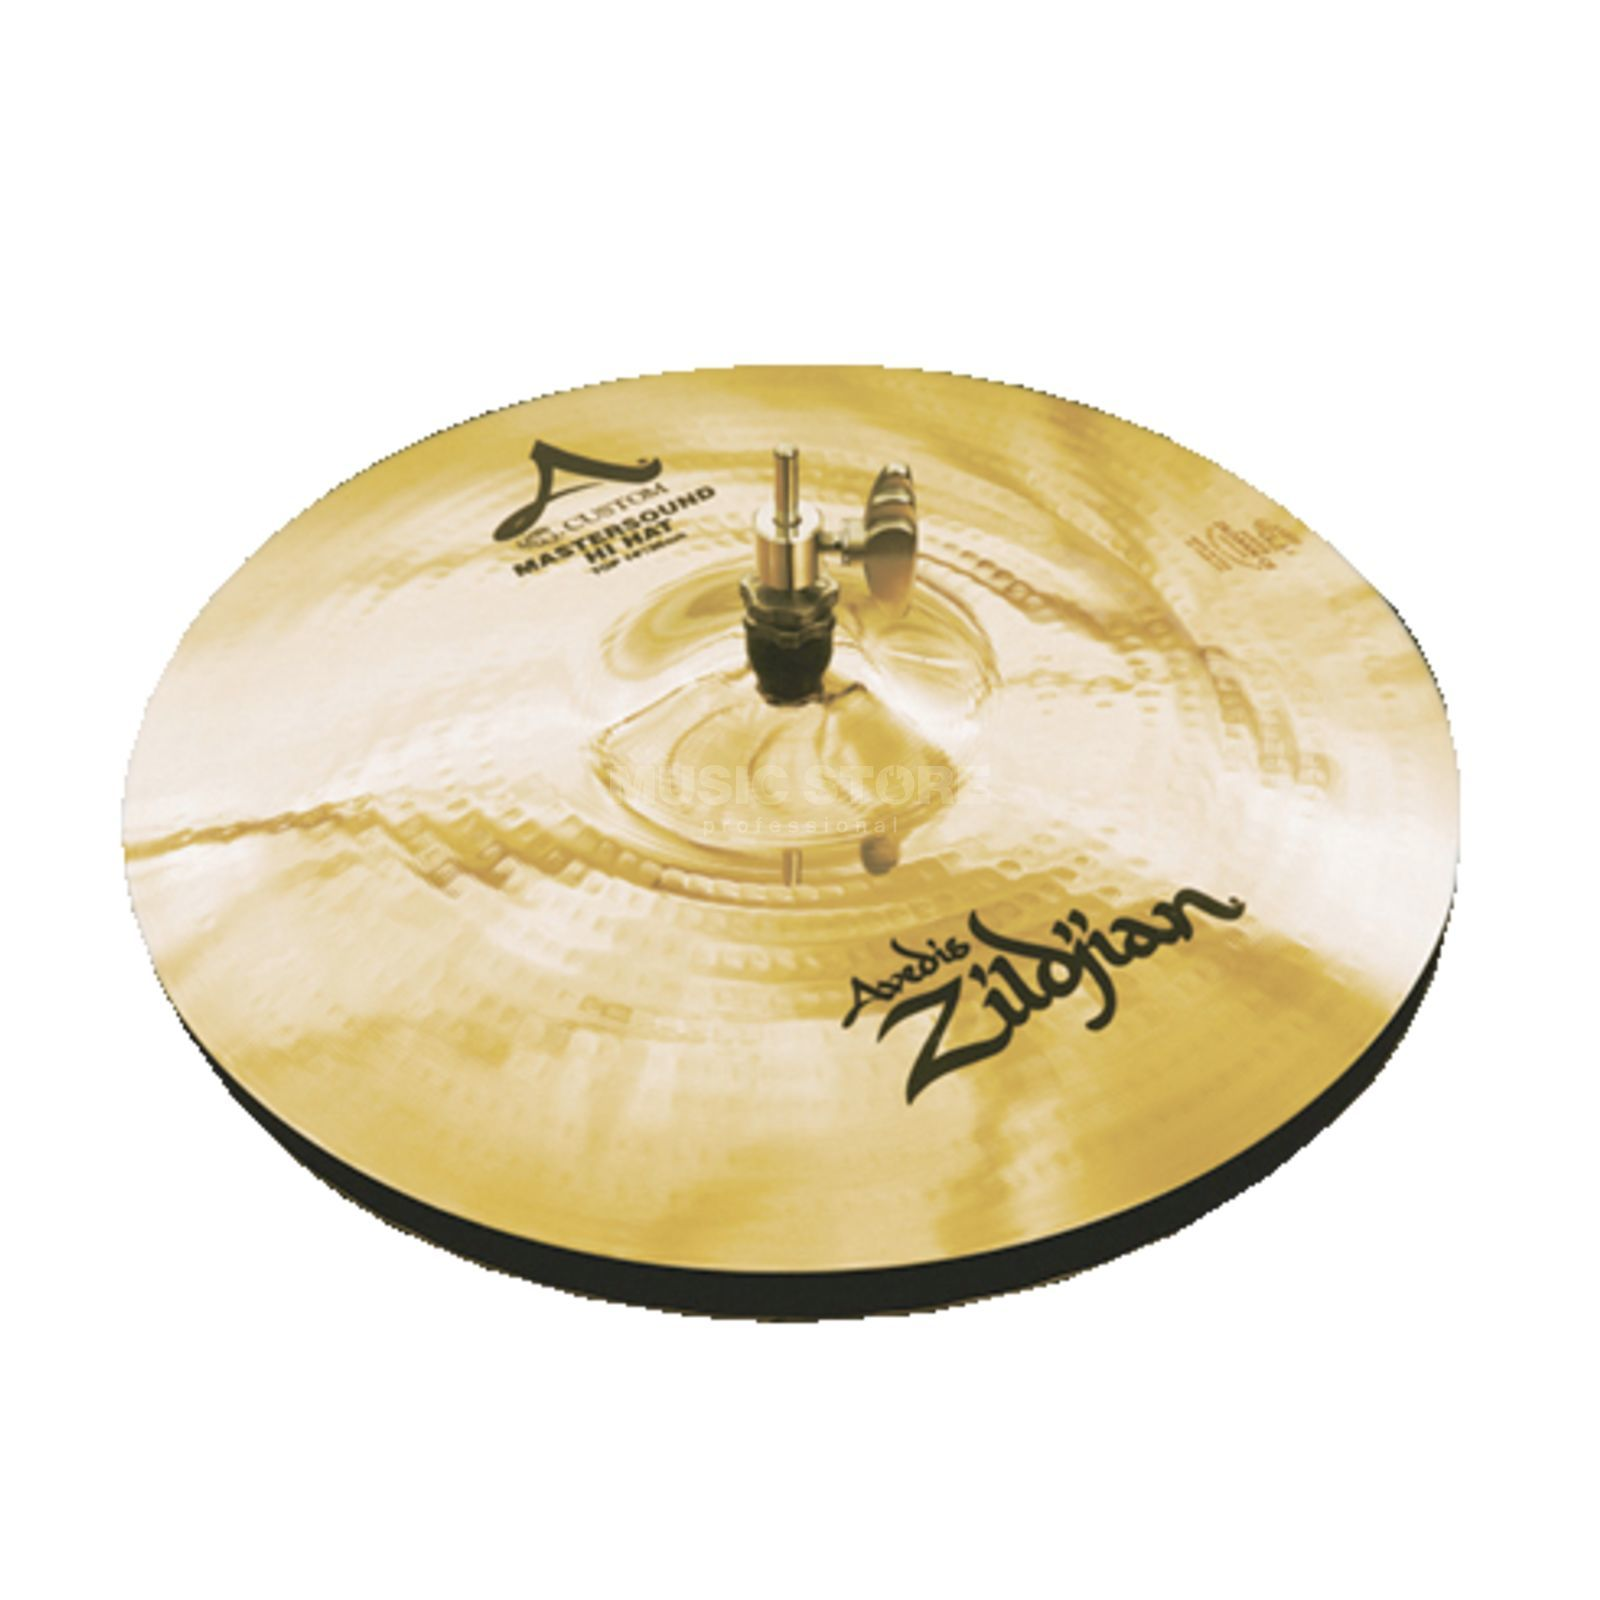 "Zildjian A-Custom Mastersound HiHat 14"" Brilliant Finish Изображение товара"